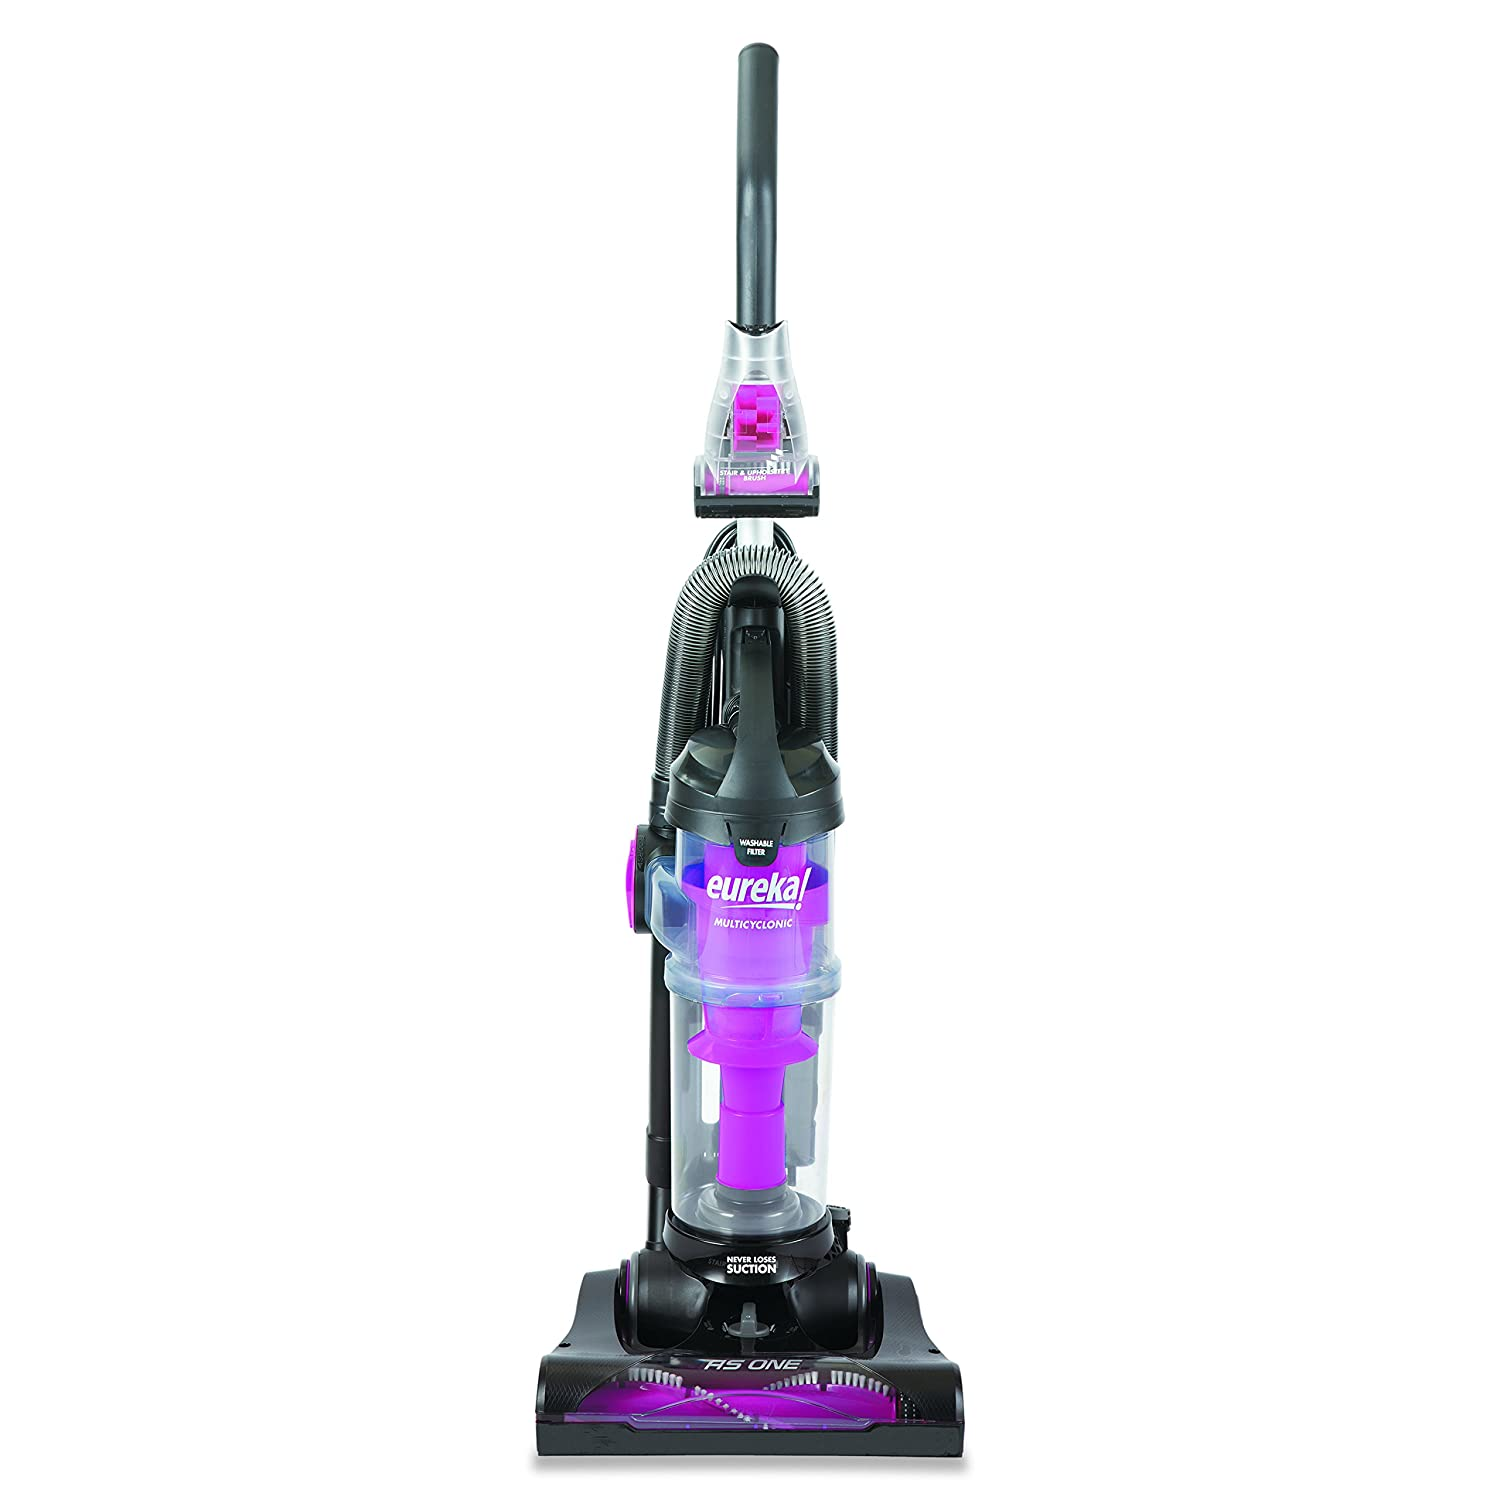 Best Vacuum Cleaner 2013: What Is The Best Vacuum Cleaner For Pet Hair